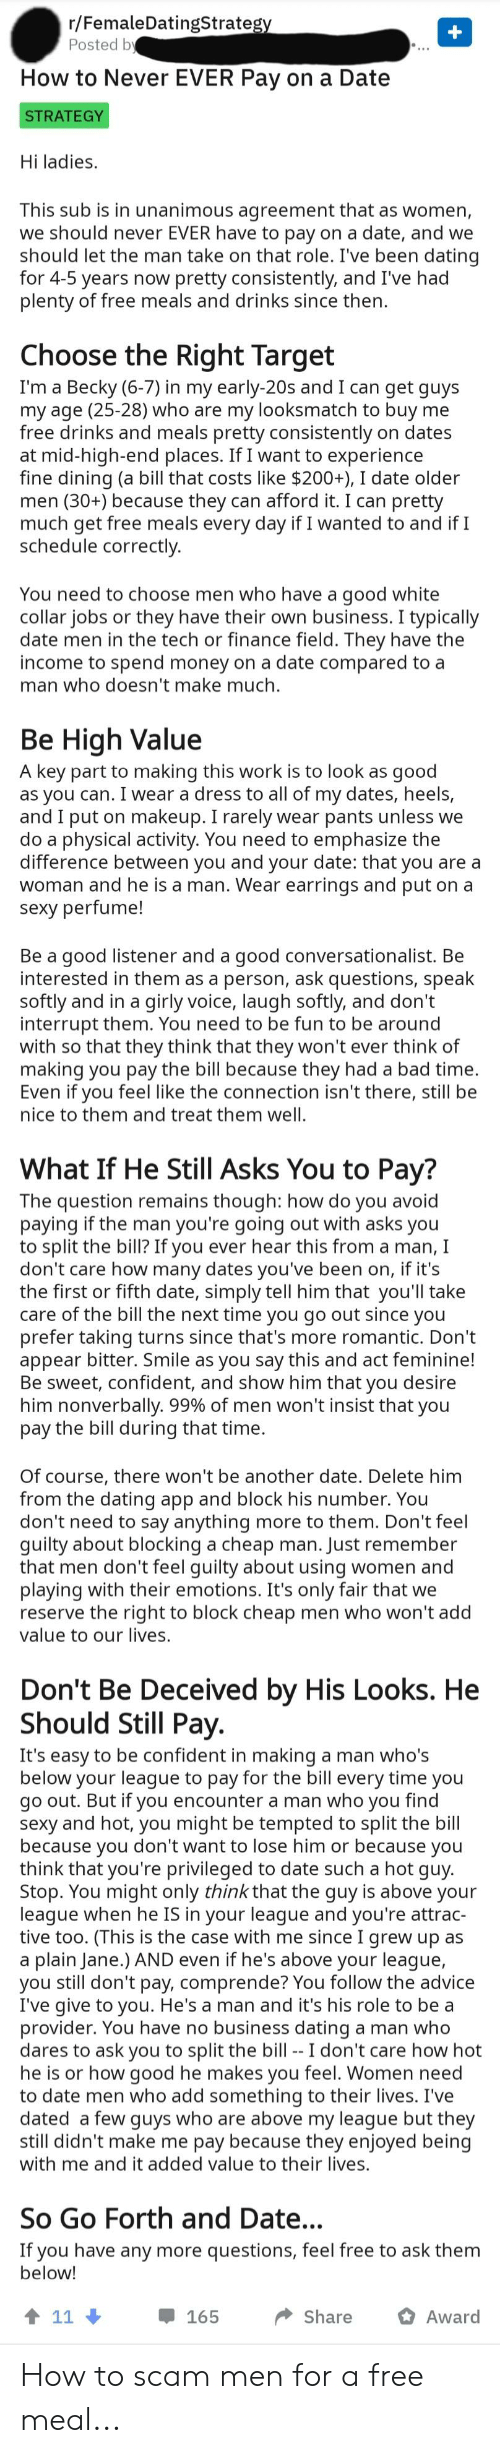 Advice, Bad, and Dating: r/FemaleDatingStrategy  Posted by  How to Never EVER Pay on a Date  STRATEGY  Hi ladies.  This sub is in unanimous agreement that as women,  we should never EVER have to pay on a date, and we  should let the man take on that role. I've been dating  for 4-5 years now pretty consistently, and I've had  plenty of free meals and drinks since then.  Choose the Right Target  I'm a Becky (6-7) in my early-20s and I can get guys  my age (25-28) who are my looksmatch to buy me  free drinks and meals pretty consistently on dates  at mid-high-end places. If I want to experience  fine dining (a bill that costs like $200+), I date older  men (30+) because they can afford it. I can pretty  much get free meals every day if I wanted to and if I  schedule correctly  You need to choose men who have a good white  collar jobs or they have their own business. I typically  date men in the tech or finance field. They have the  income to spend money on a date compared to a  man who doesn't make much  Be High Value  A key part to making this work is to look as  as you can. I wear a dress to all of my dates, heels,  and I put on makeup. I rarely wear pants unless we  do a physical activity. You need to emphasize the  difference between you and your date: that you are a  woman and he is a man. Wear earrings and put on a  sexy perfume!  good  Be a good listener and a good conversationalist. Be  interested in them as a person, ask questions, speak  softly and in a girly voice, laugh softly, and don't  interrupt them. You need to be fun to be around  with so that they think that they won't ever think of  making you pay the bill because they had a bad time.  Even if you feel like the connection isn't there, still be  nice to them and treat them well.  What If He Still Asks You to Pay?  The question remains though: how do you avoid  paying if the man you're going out with asks you  to split the bill? If you ever hear this from a man, I  don't care how many dates you've been on, if it's  the first or fifth date, simply tell him that you'll take  care of the bill the next time you go out since you  prefer taking turns since that's more romantic. Don't  appear bitter. Smile as you say this and act feminine!  Be sweet, confident, and show him that you desire  him nonverbally. 99% of men won't insist that you  pay the bill during that time.  Of course, there won't be another date. Delete him  from the dating app and block his number. You  don't need to say anything  guilty about blocking a cheap man. Just remember  that men don't feel guilty about using women and  playing with their emotions. It's only fair that we  reserve the right to block cheap men who won't add  value to our lives.  more to them. Don't feel  Don't Be Deceived by His Looks. He  Should Still Pay.  It's easy to be confident in making  below your league to pay for the bill every time you  go out. But if you encounter a man who you find  sexy and hot, you might be tempted to split the bill  because you don't want to lose him or because you  think that you're privileged to date such a hot guy.  Stop. You might only think that the guy is above your  league when he IS in your league and you're attrac-  tive too. (This is the case with me since I grew up as  a man who's  plain Jane.) AND even if he's above your league,  TO  you still don't pay, comprende? You follow the advice  I've give to you. He's a man and it's his role to be a  provider. You have no business dating a man who  dares to ask you to split the bill -- I don't care how hot  he is or how good he makes you feel. Women need  to date men who add something to their lives. I've  dated a few guys who are above my league but they  still didn't make me pay because they enjoyed being  with me and it added value to their lives.  So Go Forth and Date...  If you have any more questions, feel free to ask them  below!  t 11  165  Share  Award How to scam men for a free meal...